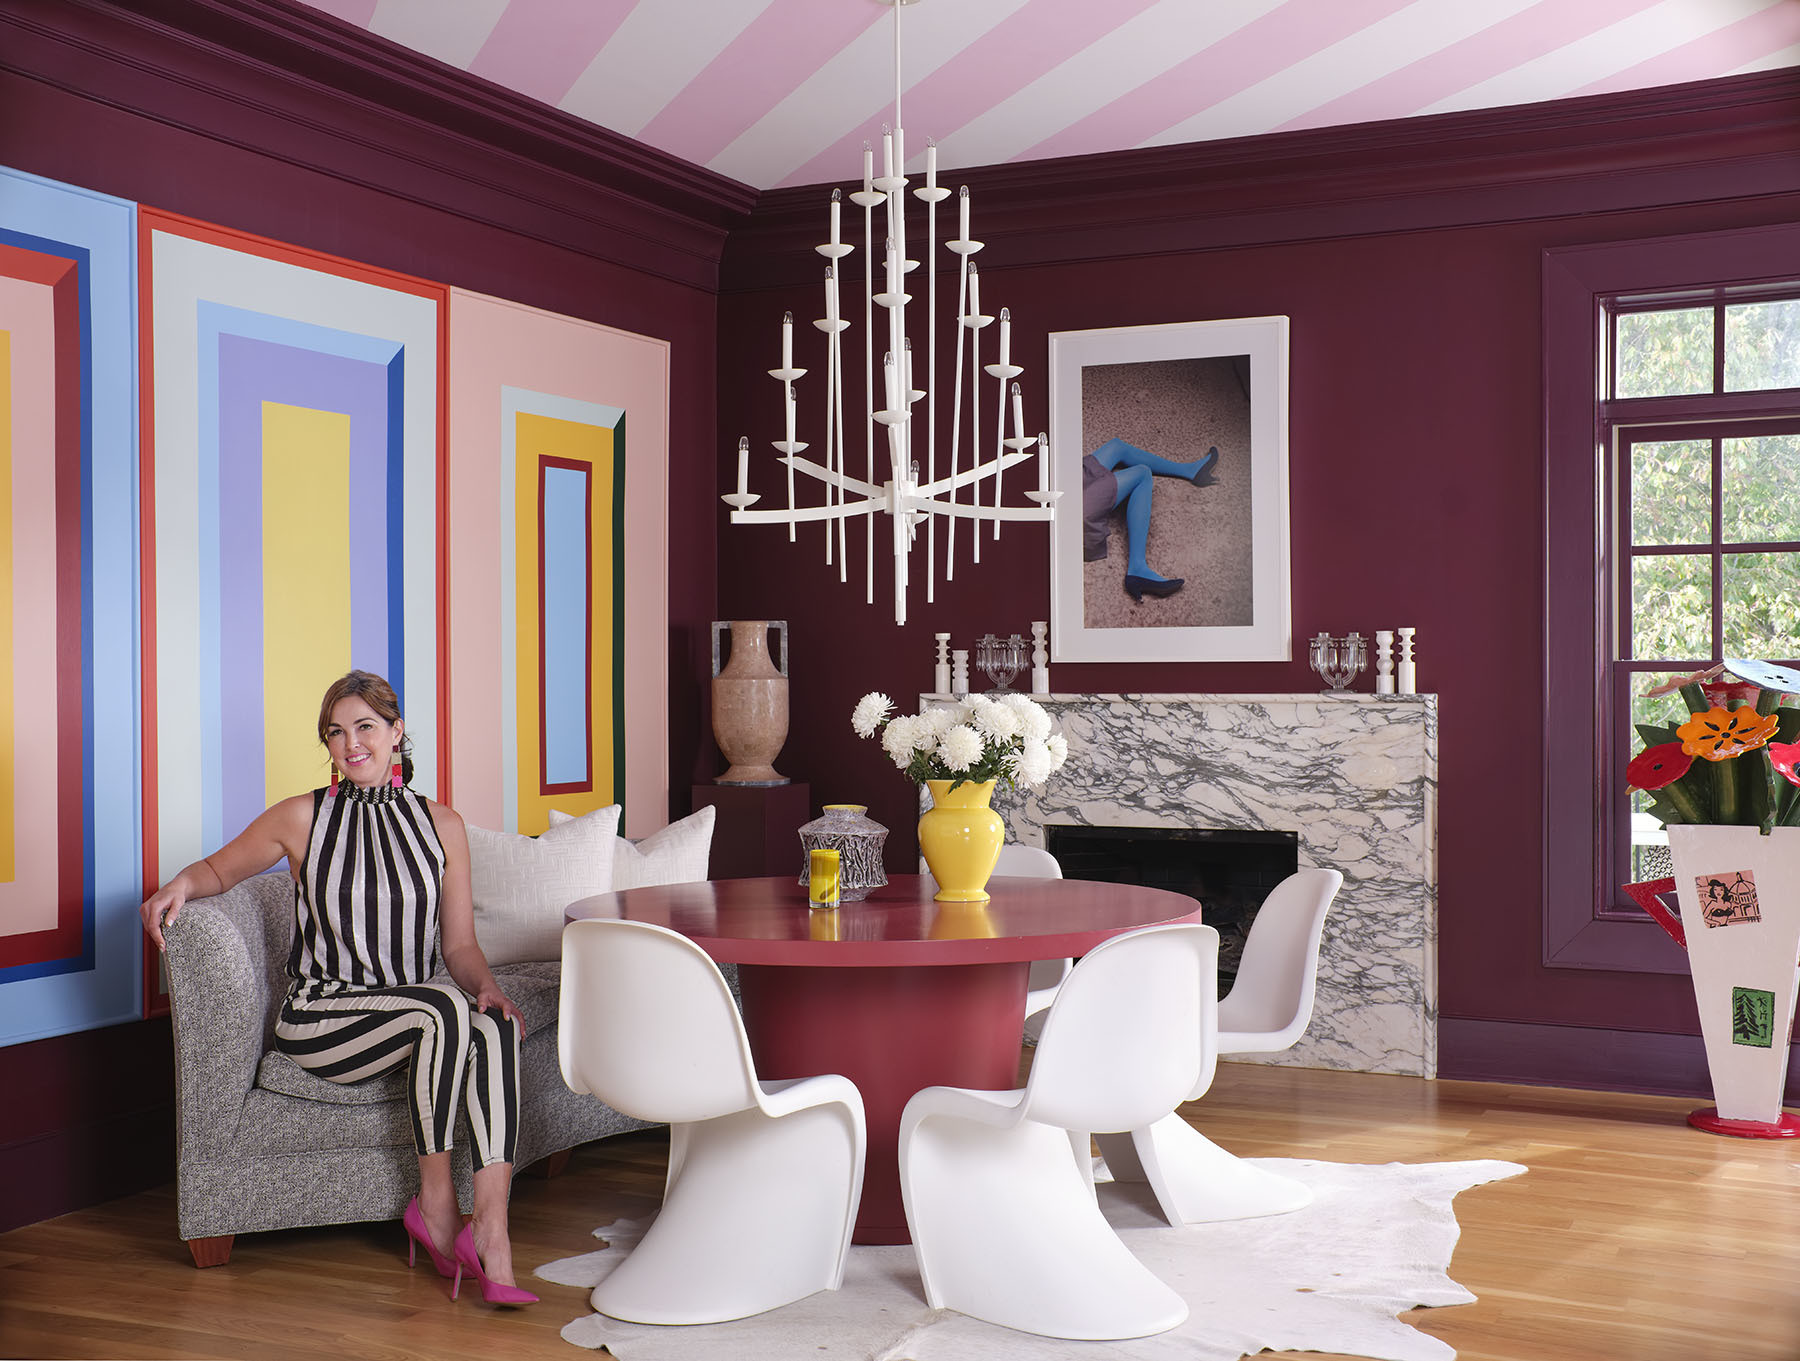 The potential for creative exploration is limitless in Blehm's dining room where she mixes color, pattern, shape, and texture with effortless ease.Crate & Barrel Dining Table |Panton Chairs | Vintage Love Seat |Angela Chrusciaki Blehm Artwork |Gillian BryceFloor Vase | Vintage Floor Hide | Vintage Chandelier